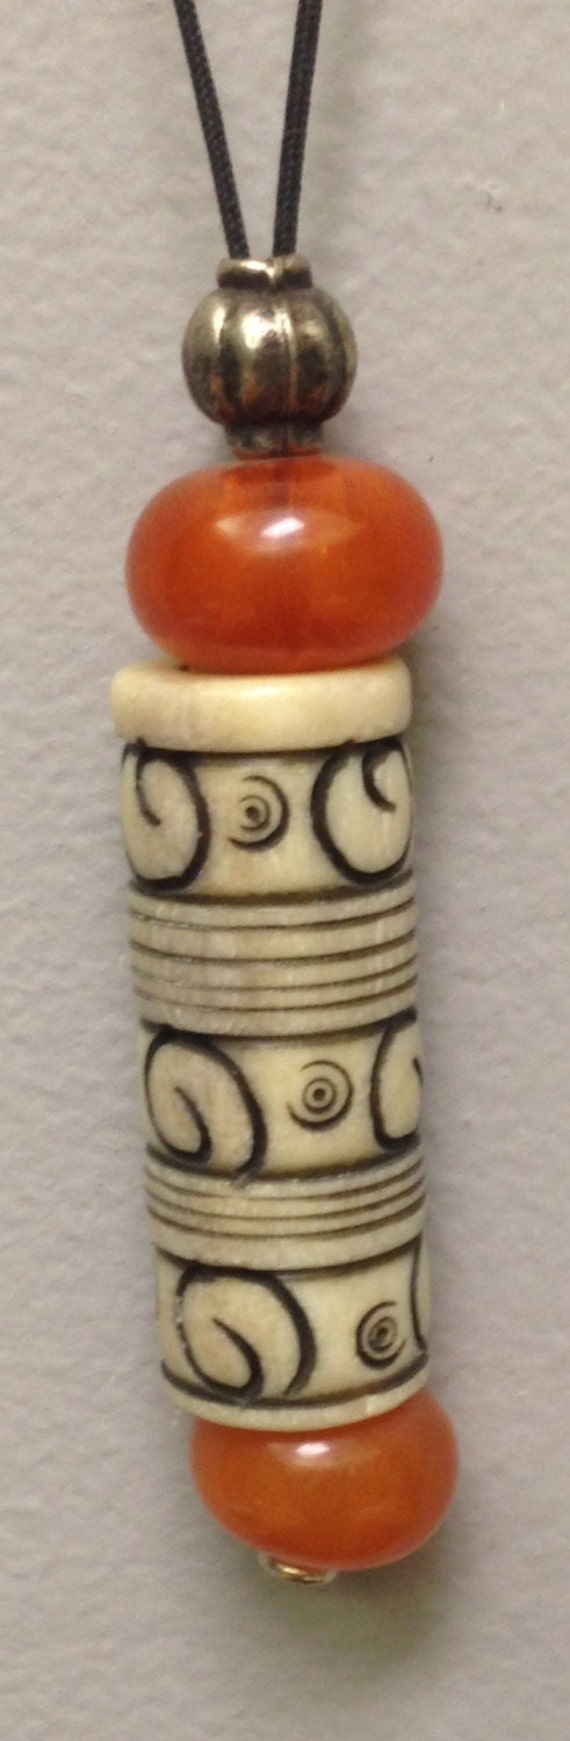 Indonesian Necklace Amber Resin Handmade Handcarved Bone Cord Necklace Jewelry Cord Gift for Her Fun